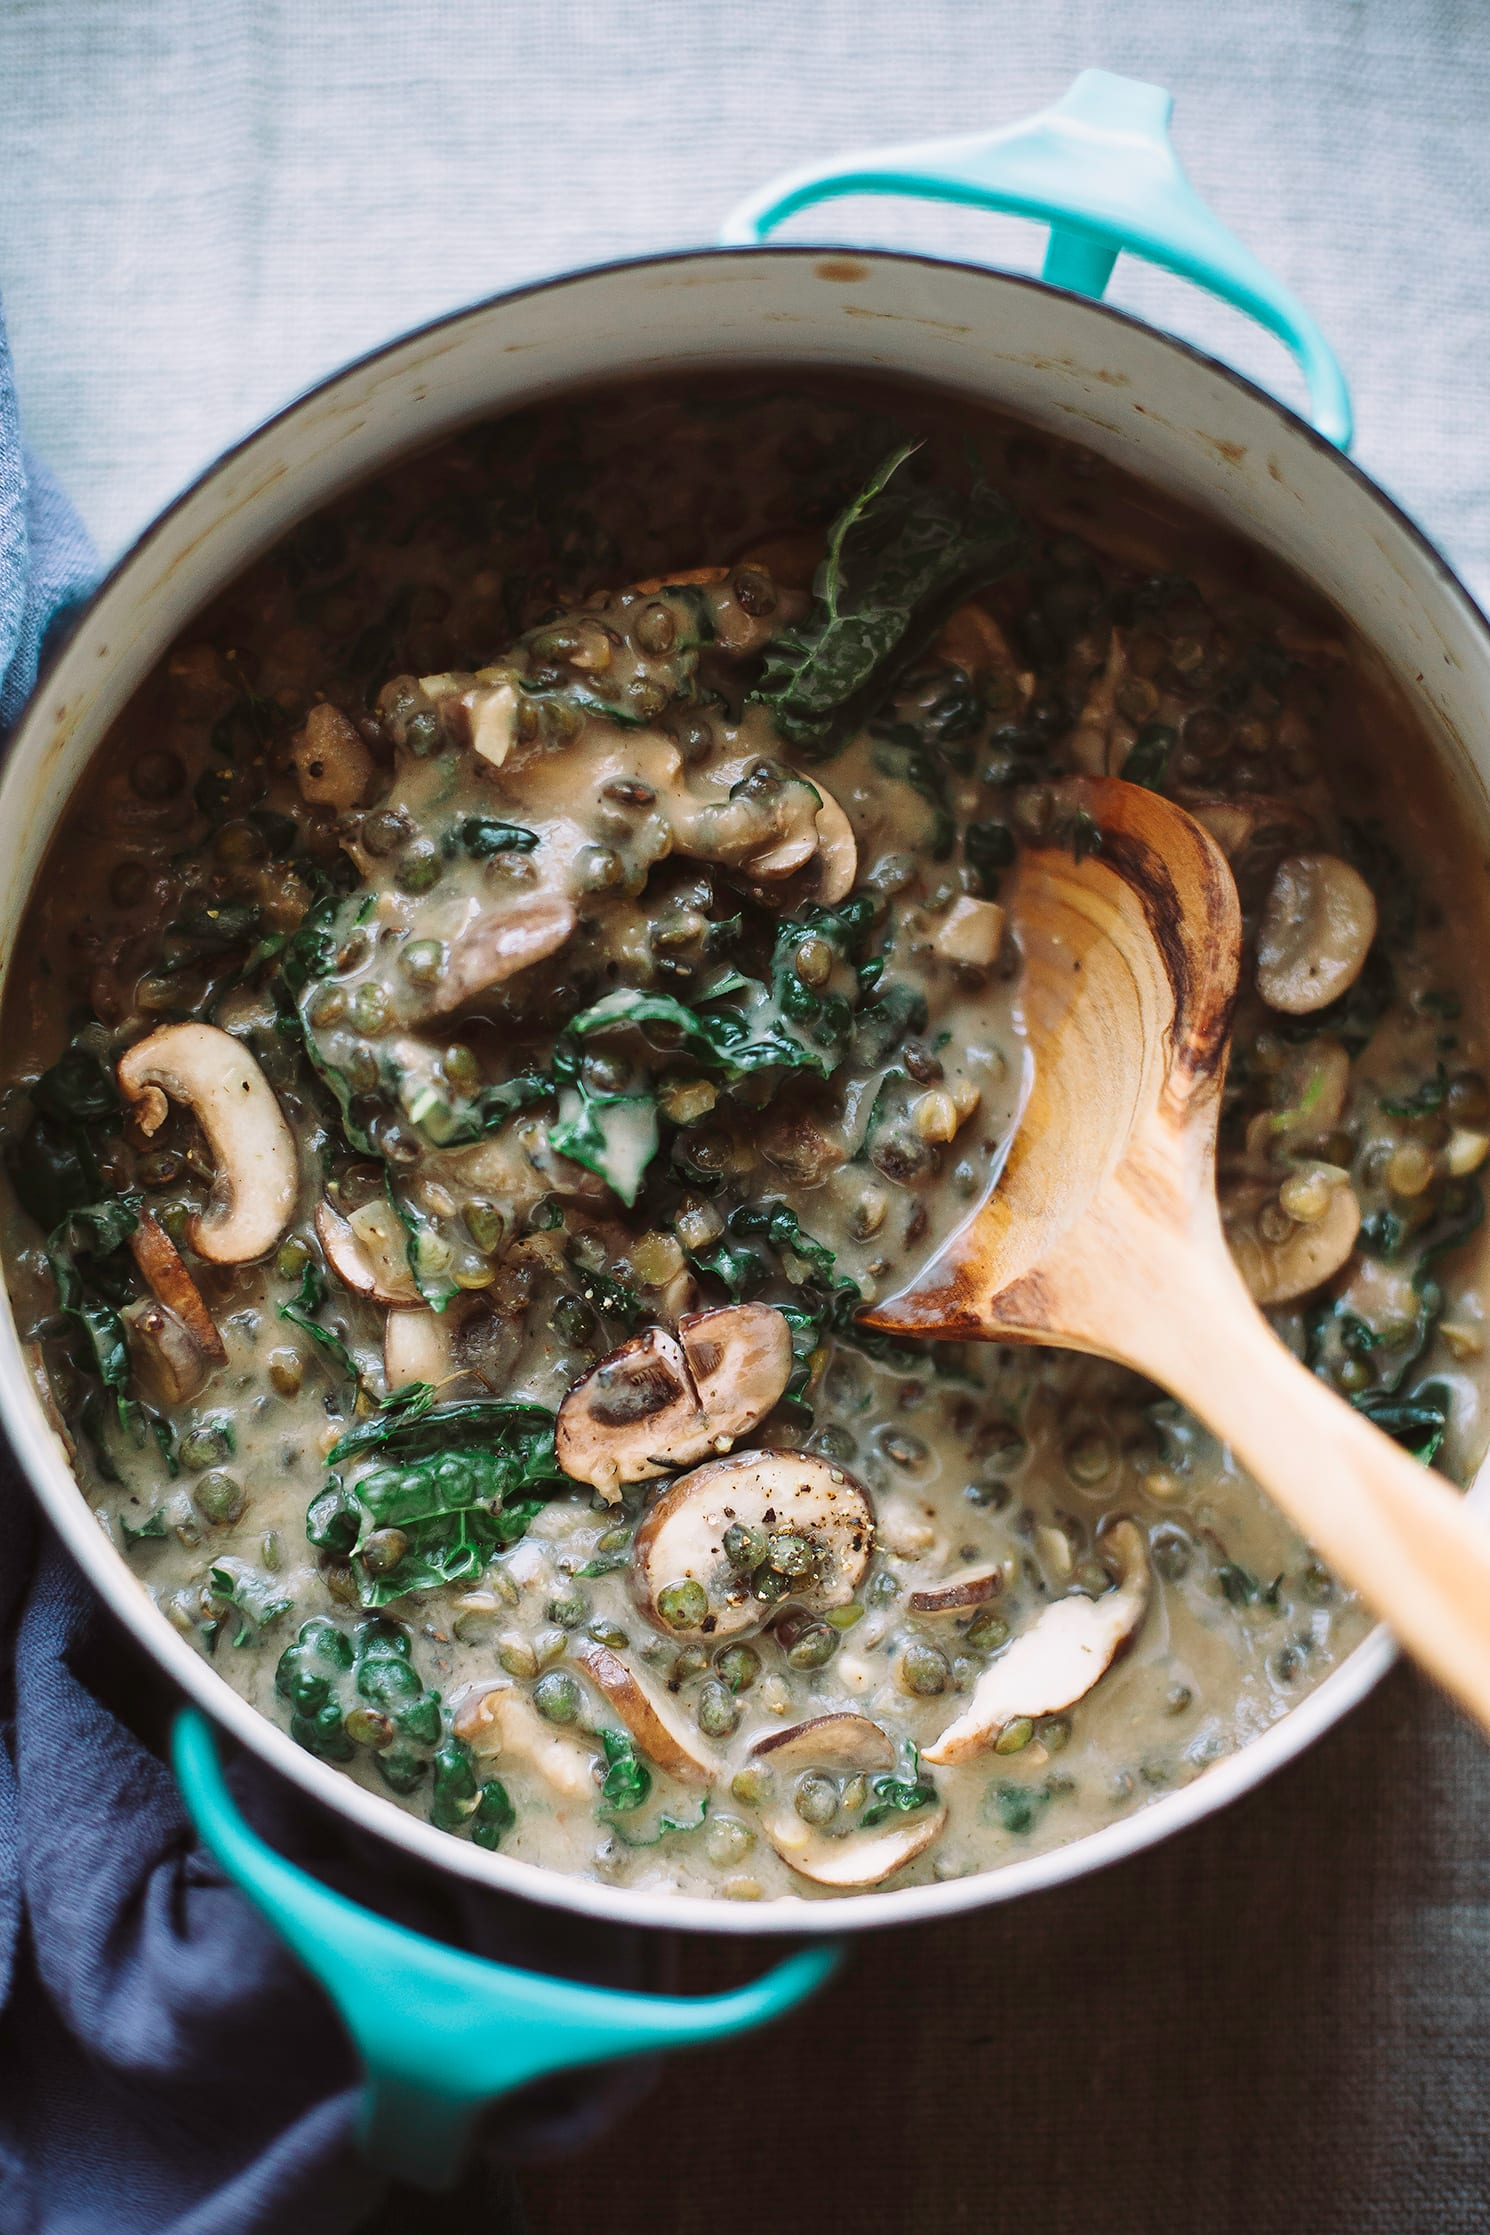 An overhead, up close shot of creamy French lentils with mushrooms and kale. The stew is light beige with green bits (the kale). The stew is photographed in a turquoise enamelware pot with a wooden spoon sticking out. There is a deep blue napkin around the handle of the pot. Part of a round up of vegan soup recipes